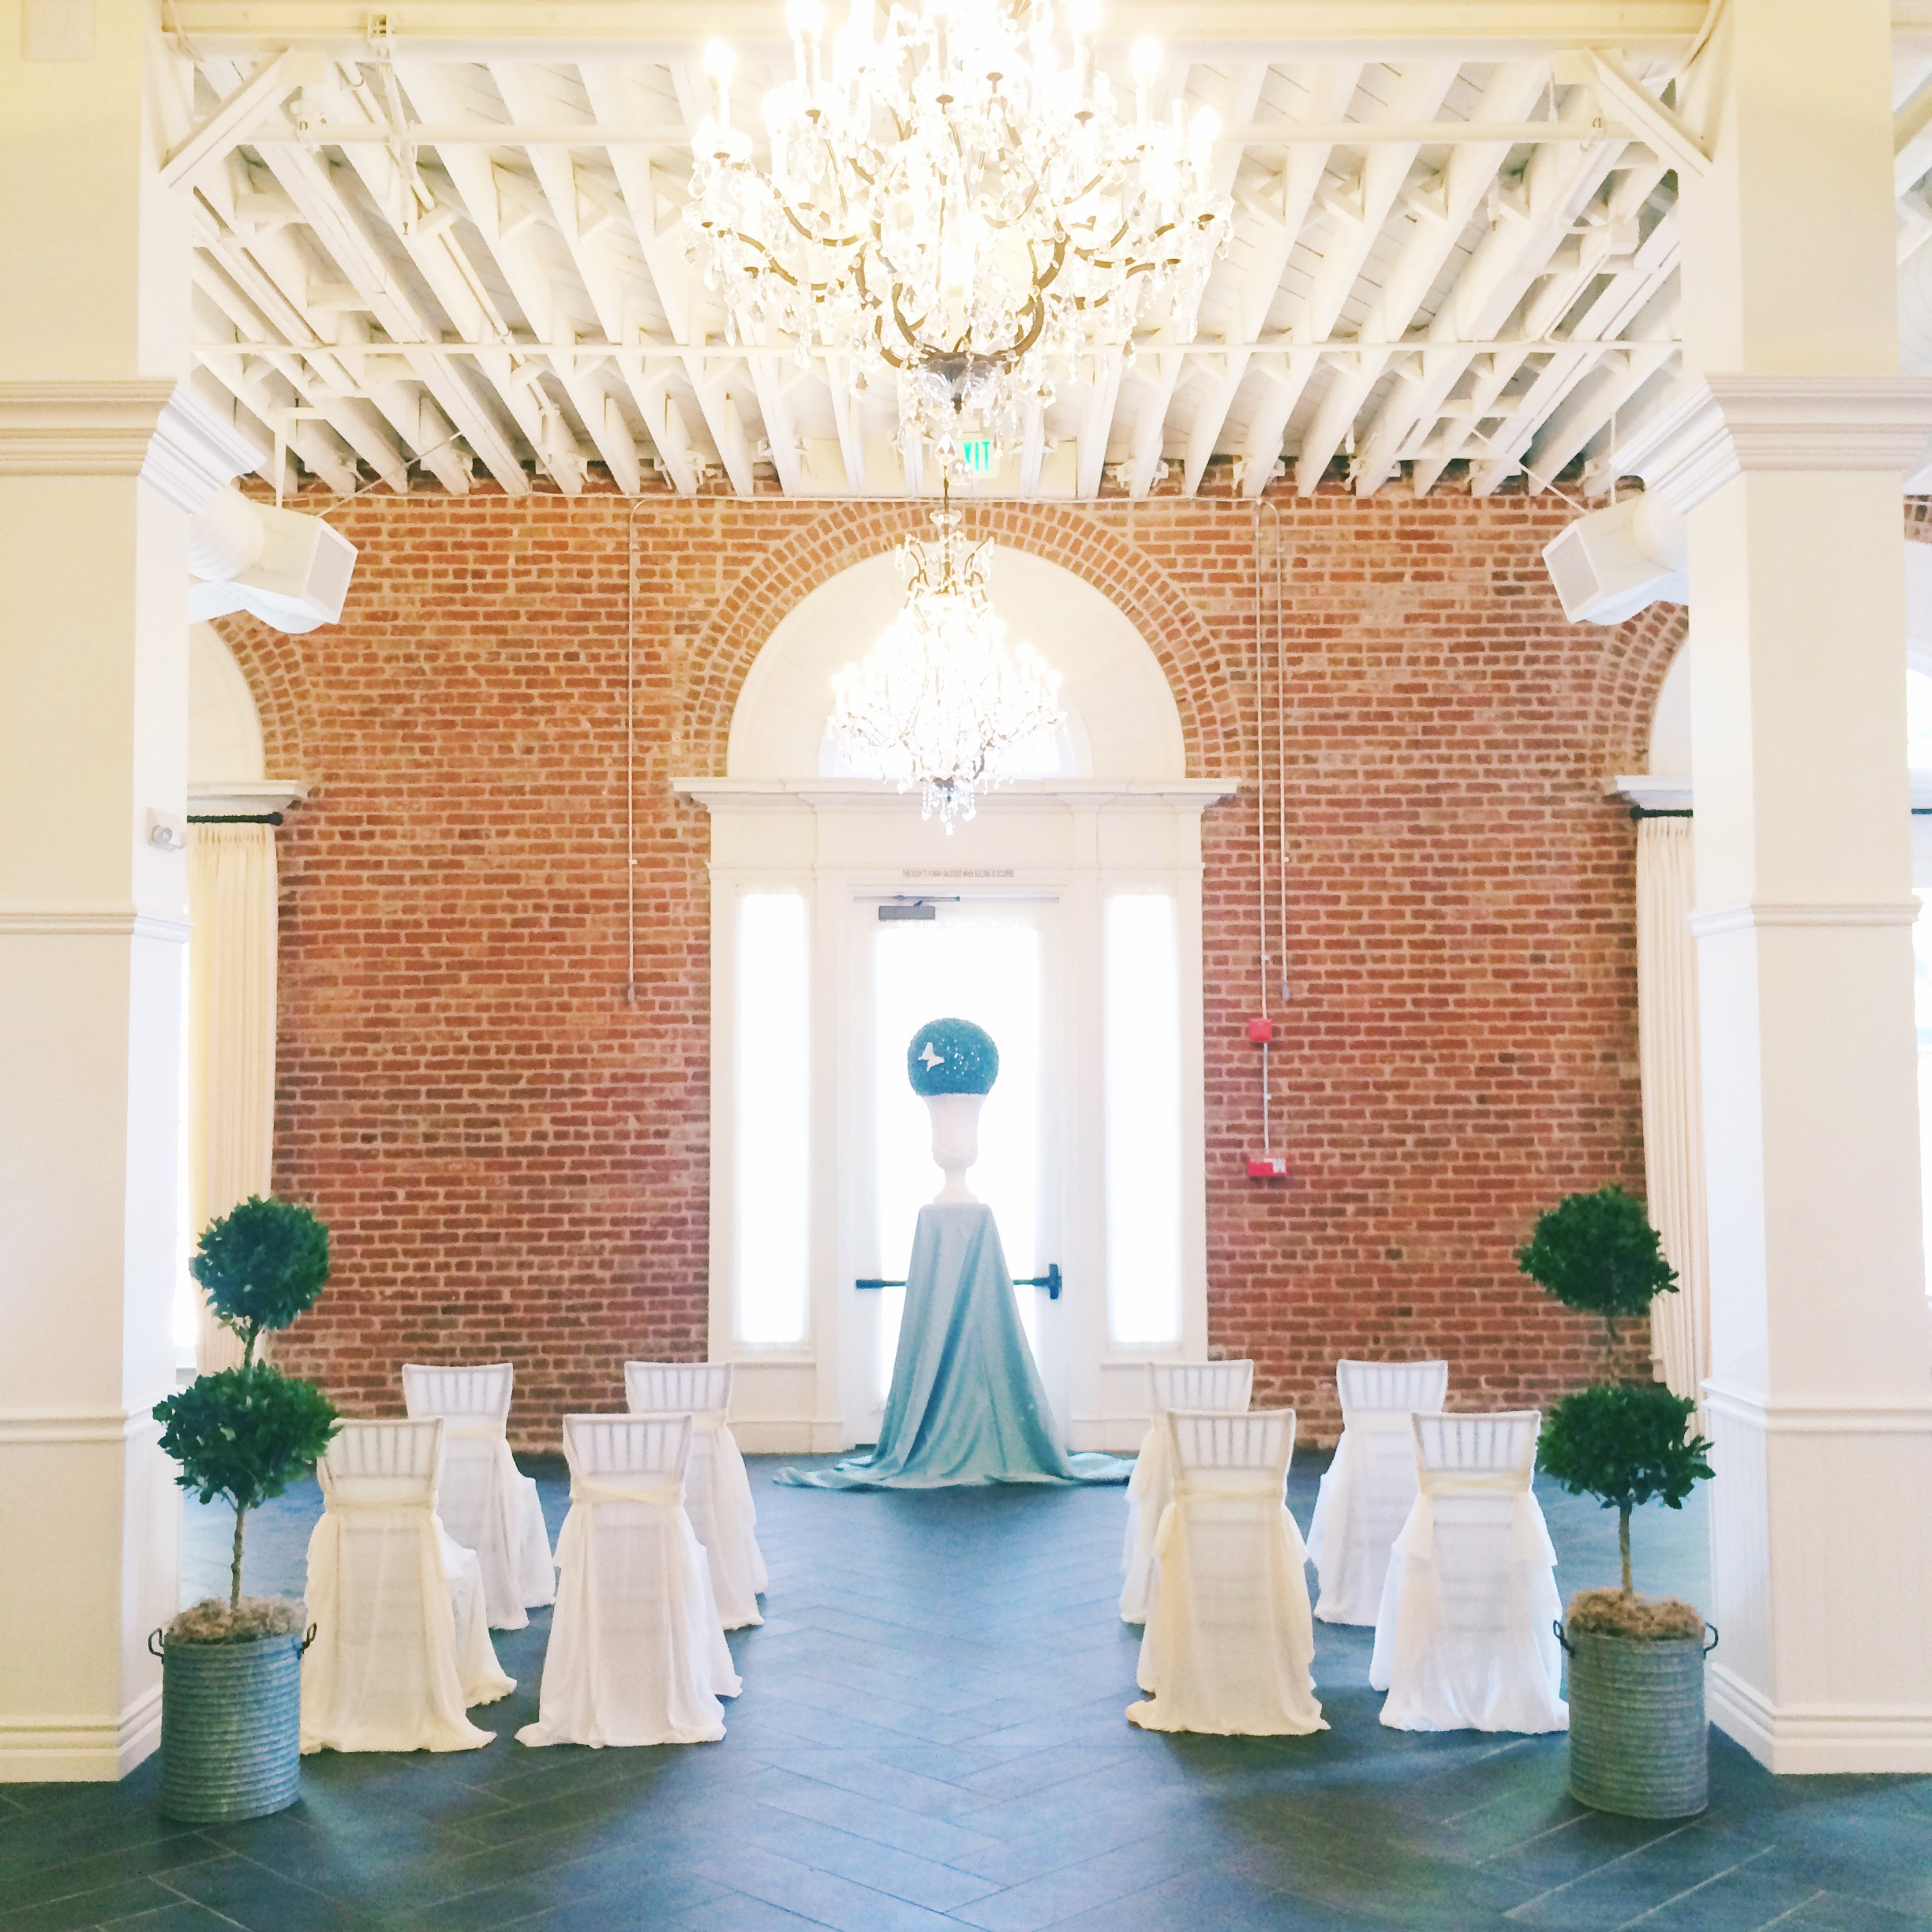 An iphone snap of the ceremony site, just inside the front door to the estate.